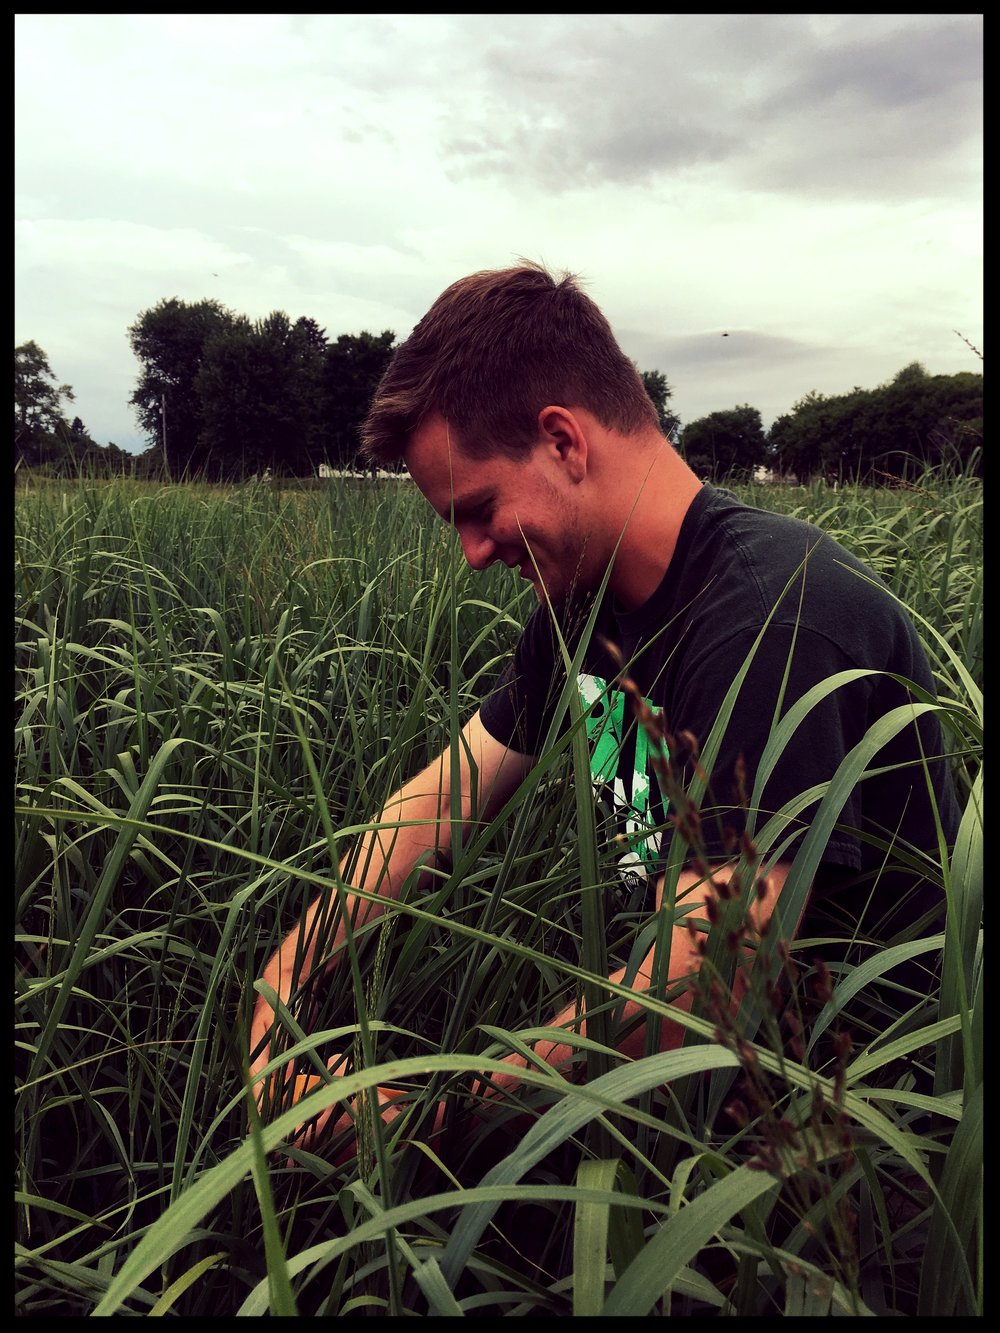 Peter Drogosh collecting leaf area samples in the field (July 2016)